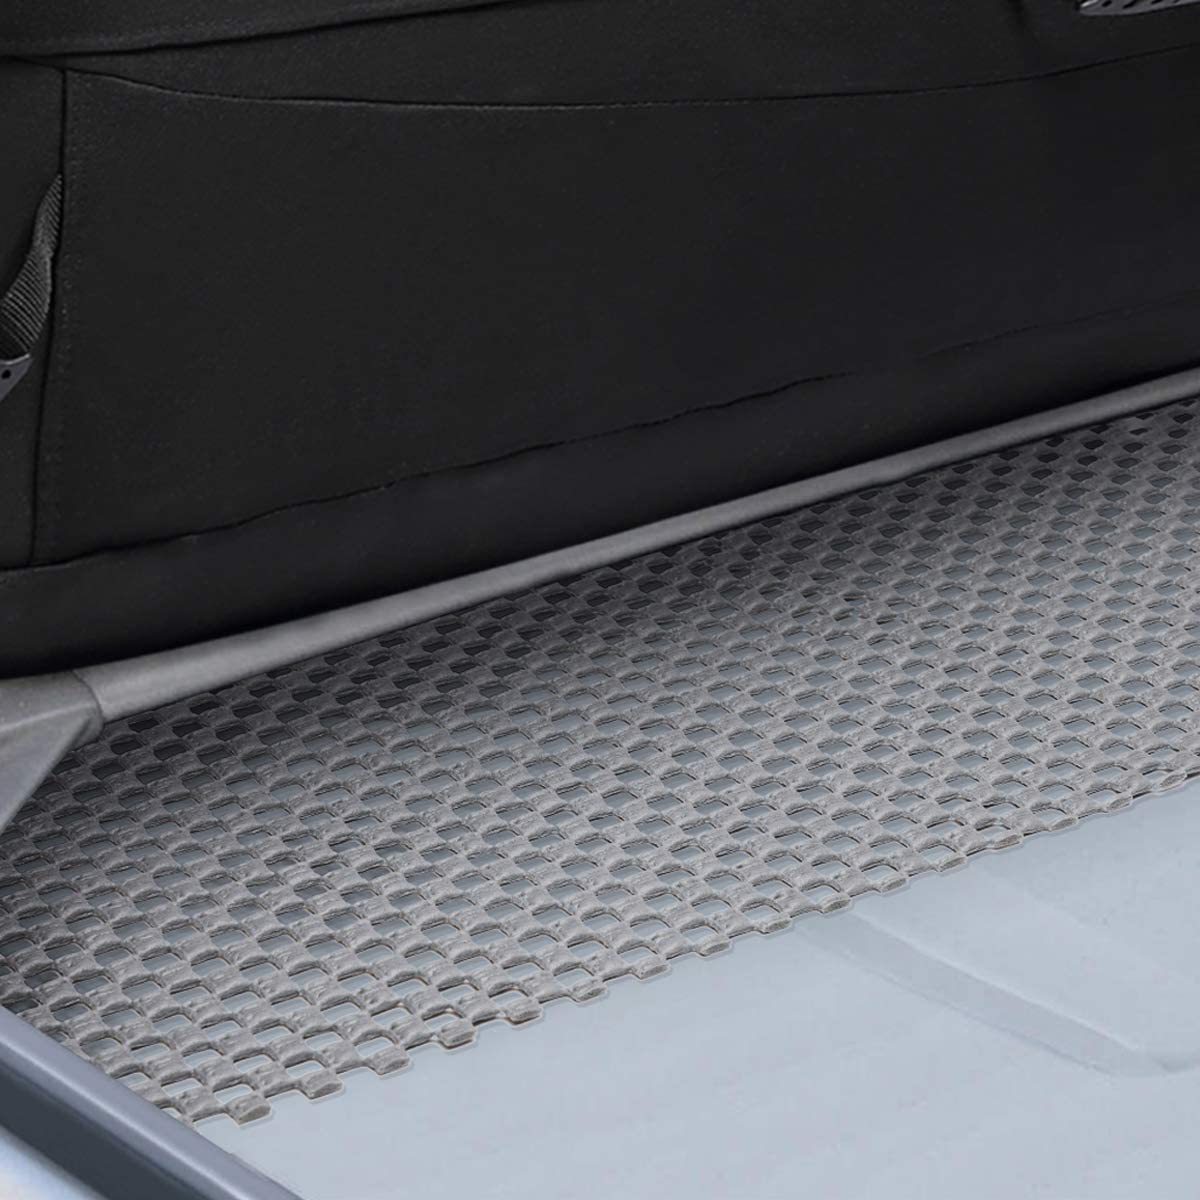 MIDABAO Roof Cargo Bag Protective Mat for Car Roof Carrier Bags with Extra Padding Car Roof Mat Under Any Rooftop Cargo Bag